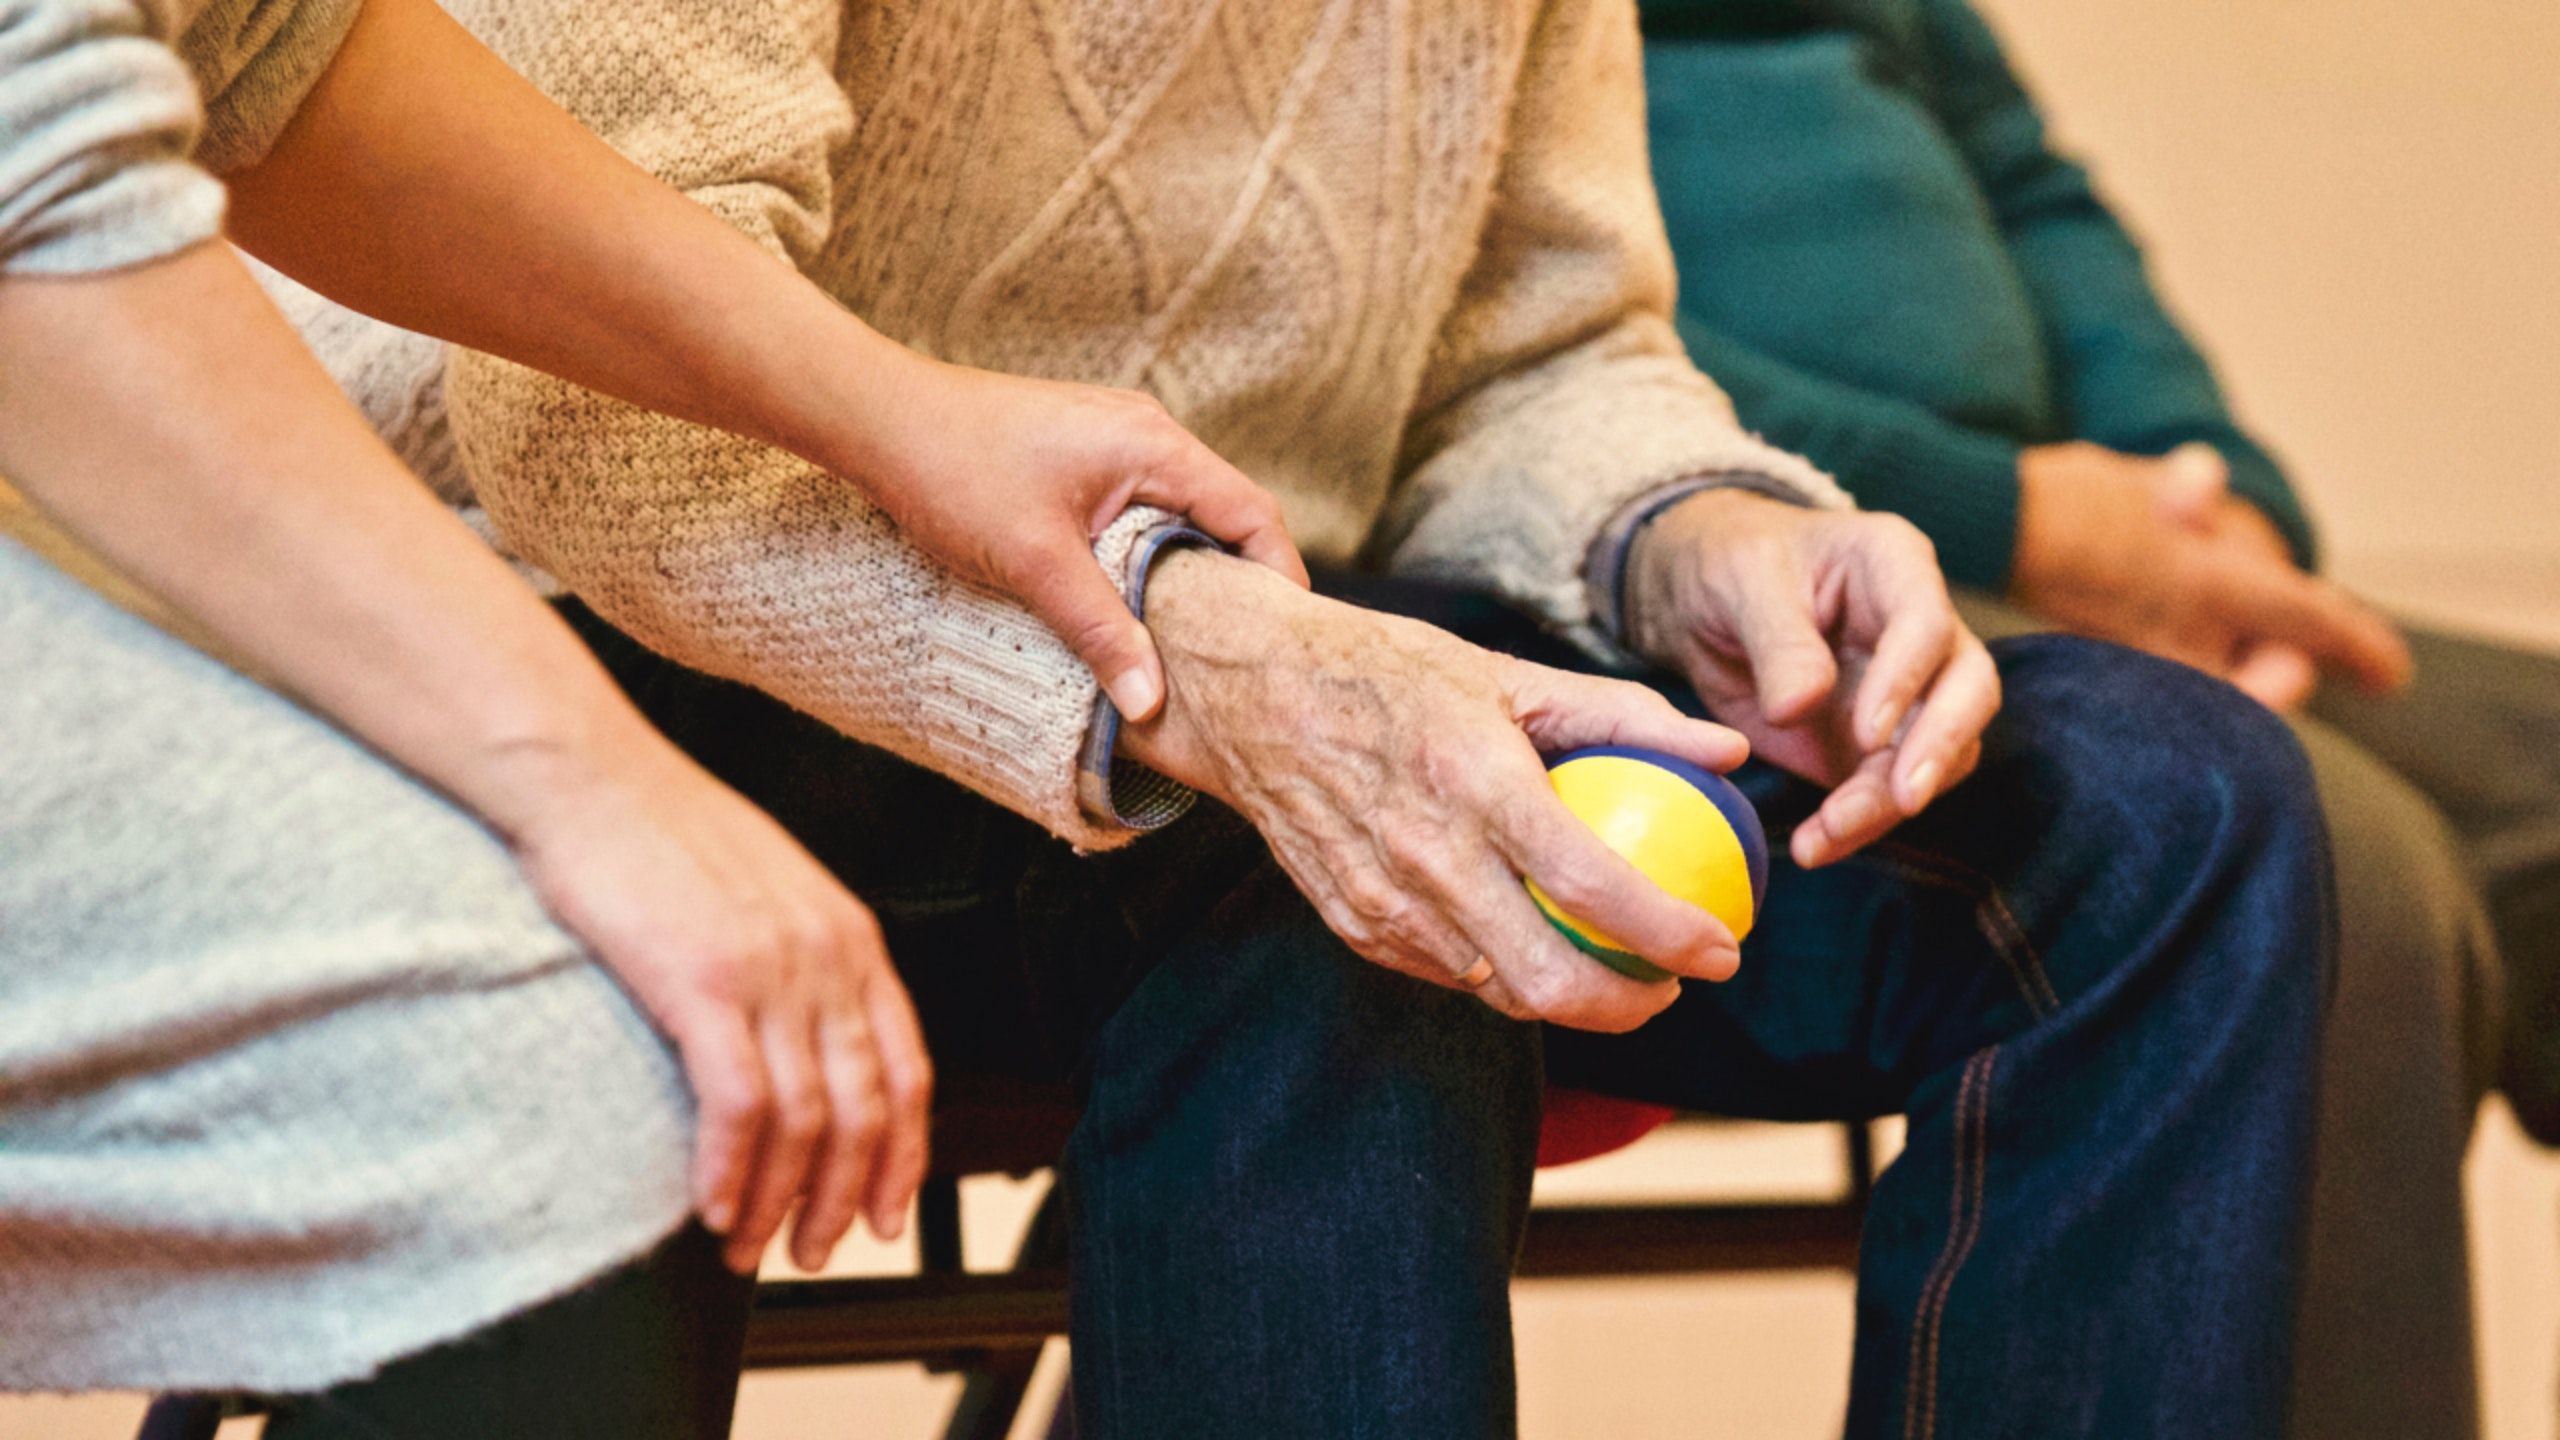 Aide helping person hold a ball during physical therapy